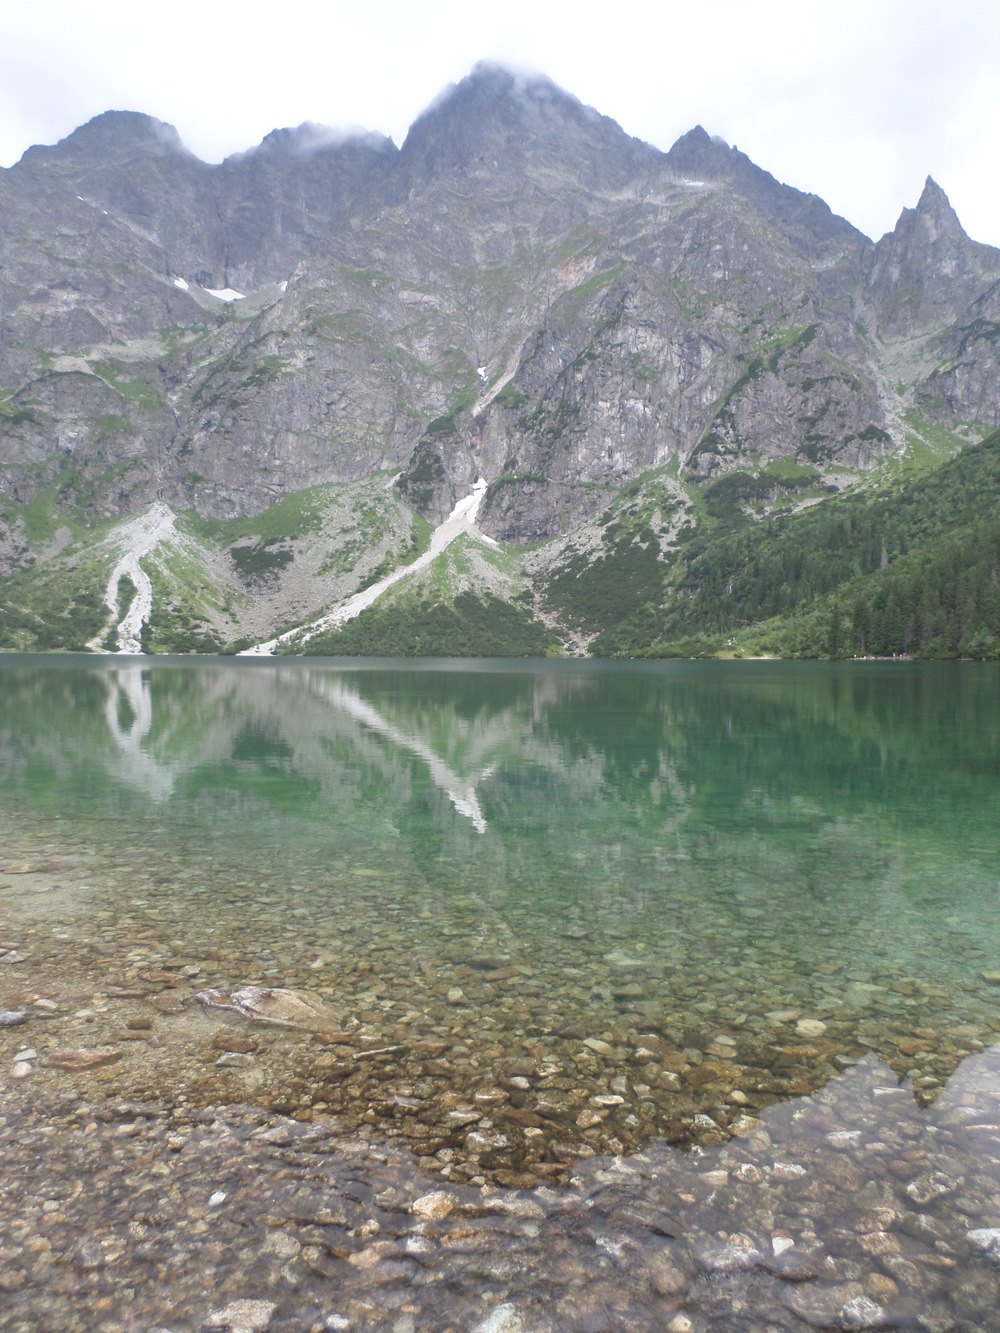 Hiking in Zakopane, Polandwith a view of the Tatra Mountains